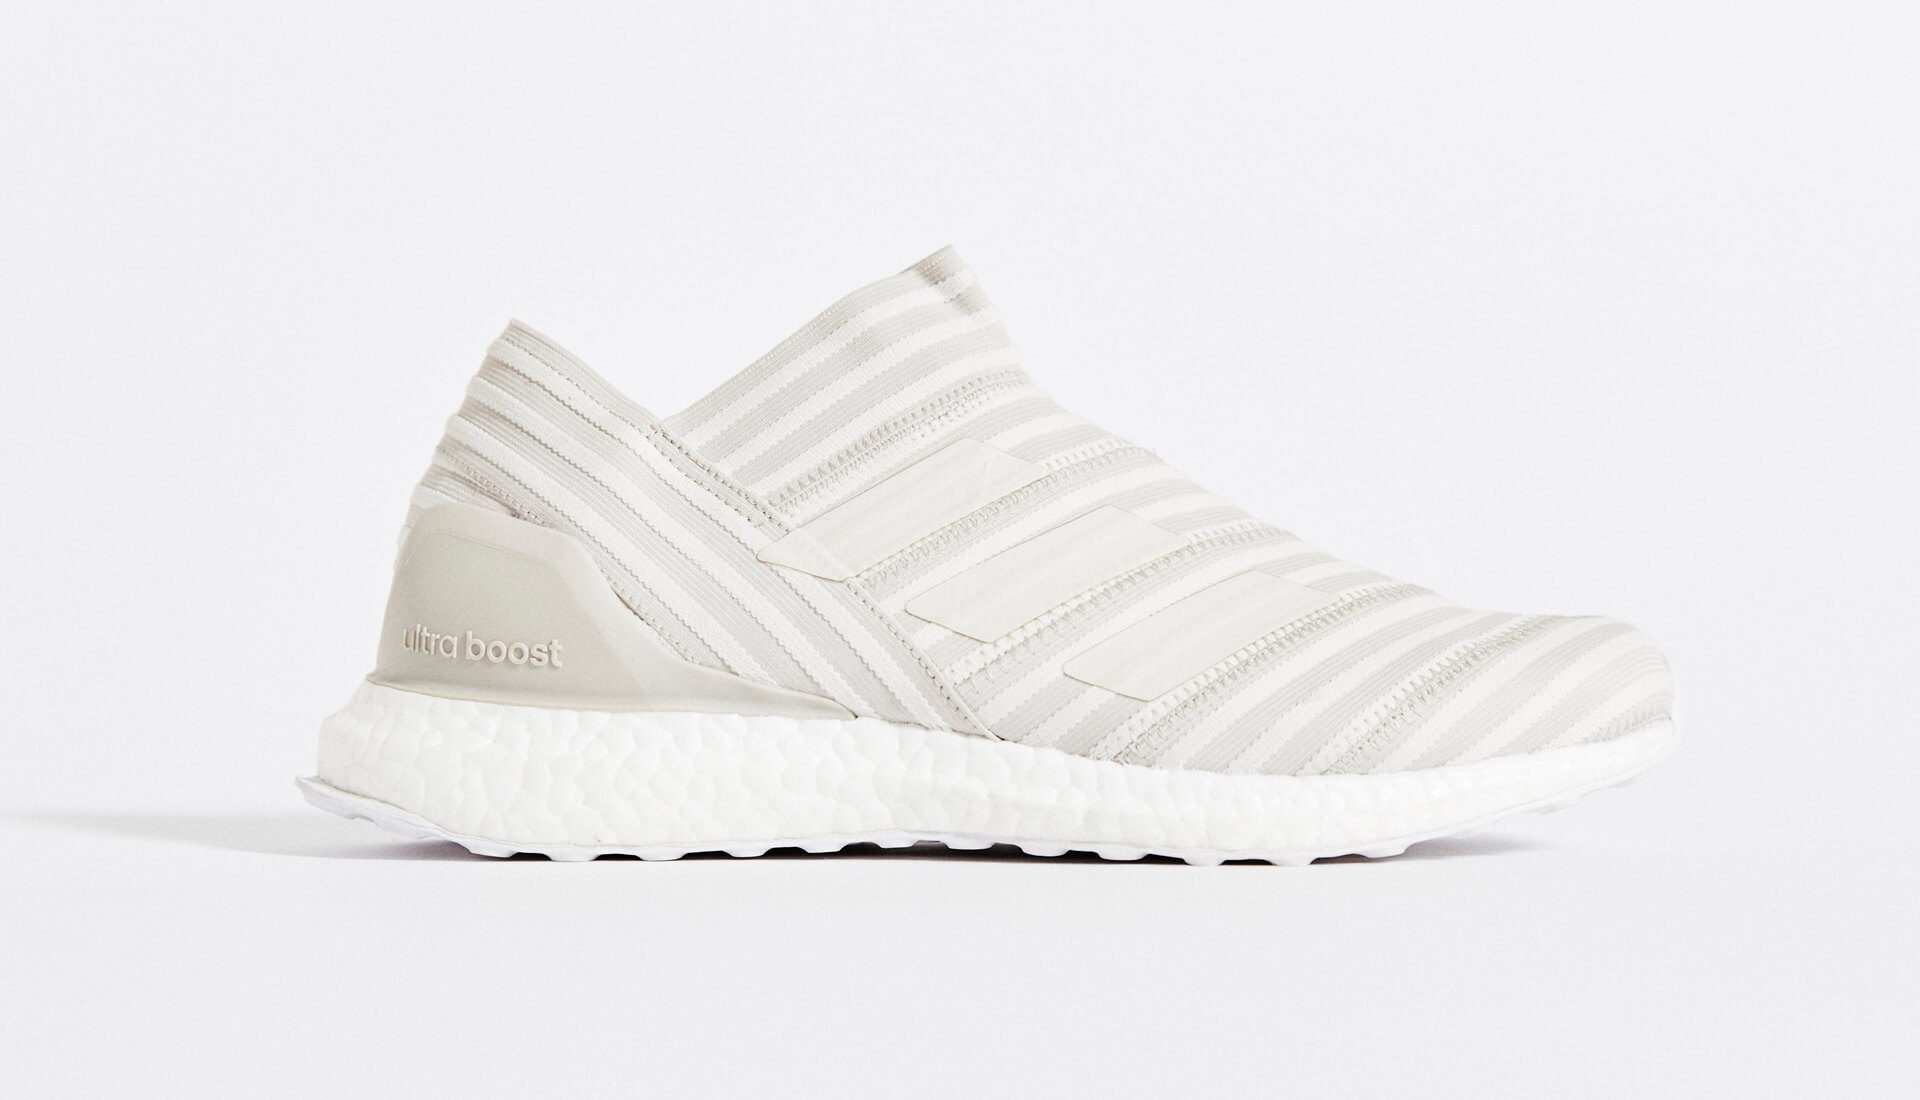 d7d680bf4f93a The new adidas